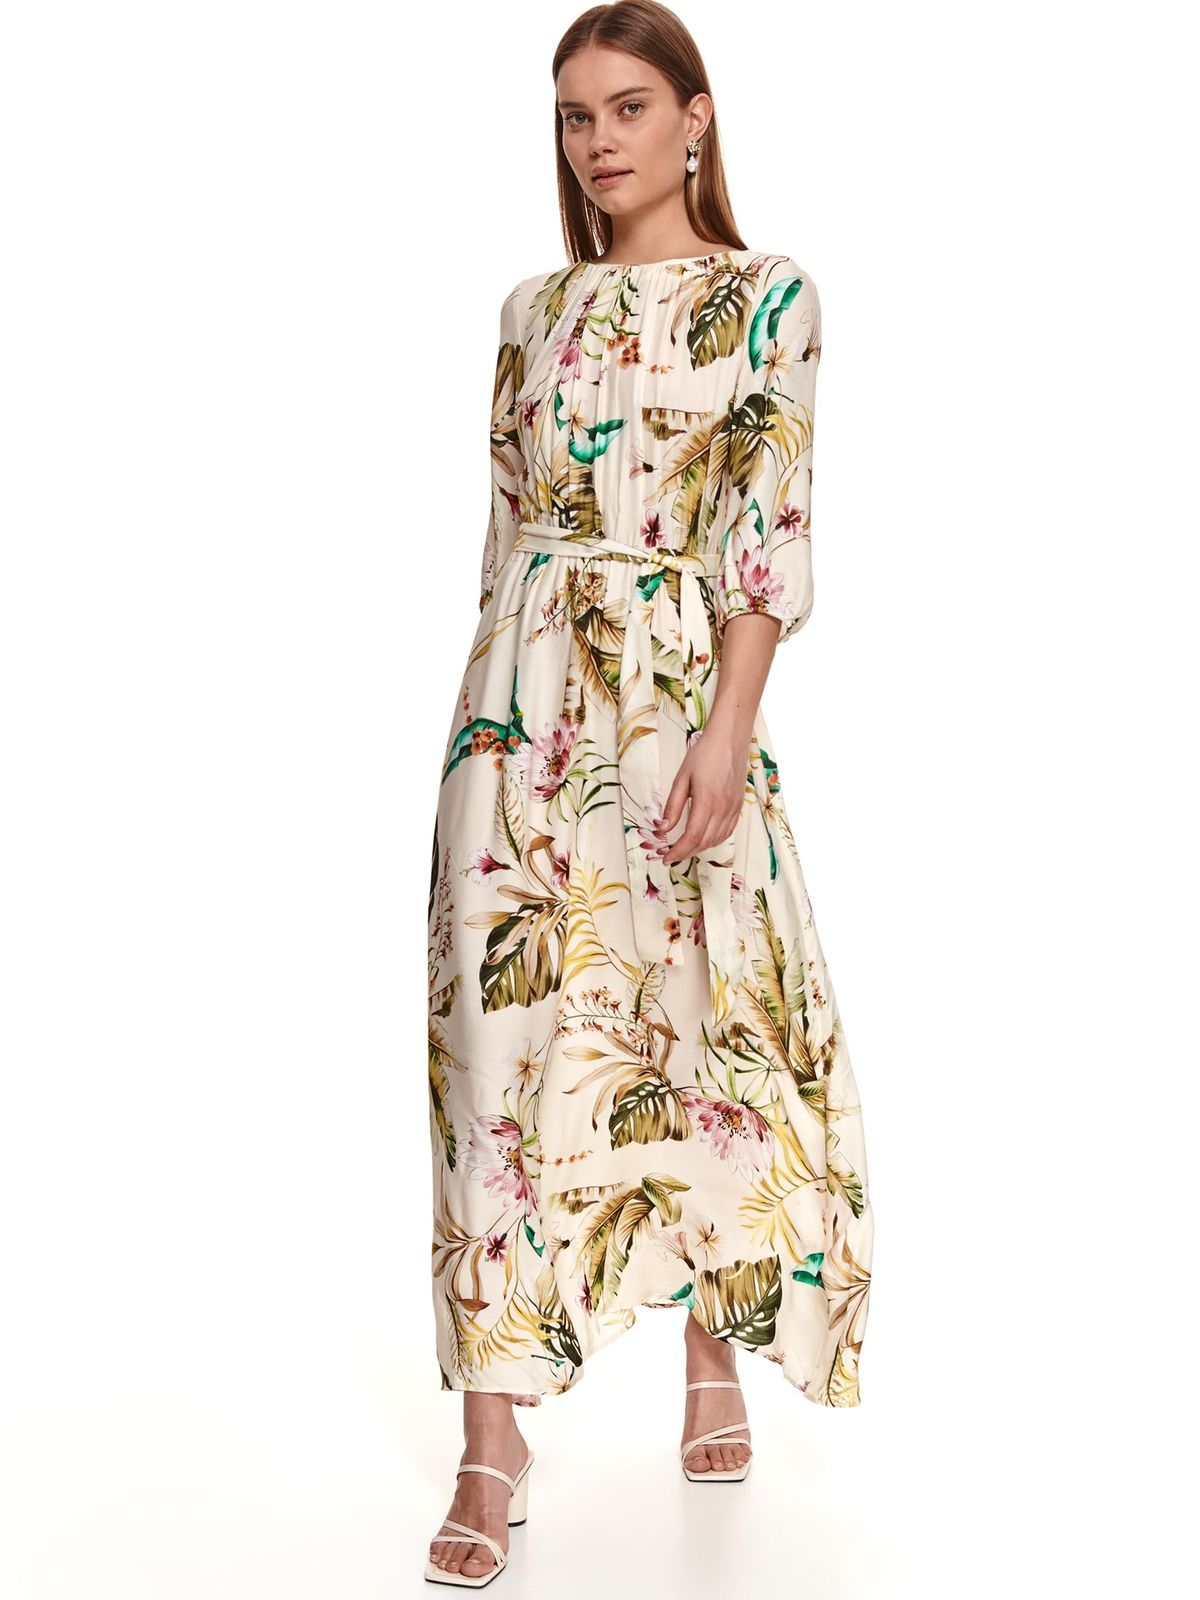 Long with floral print accessorized with tied waistband airy fabric cream dress